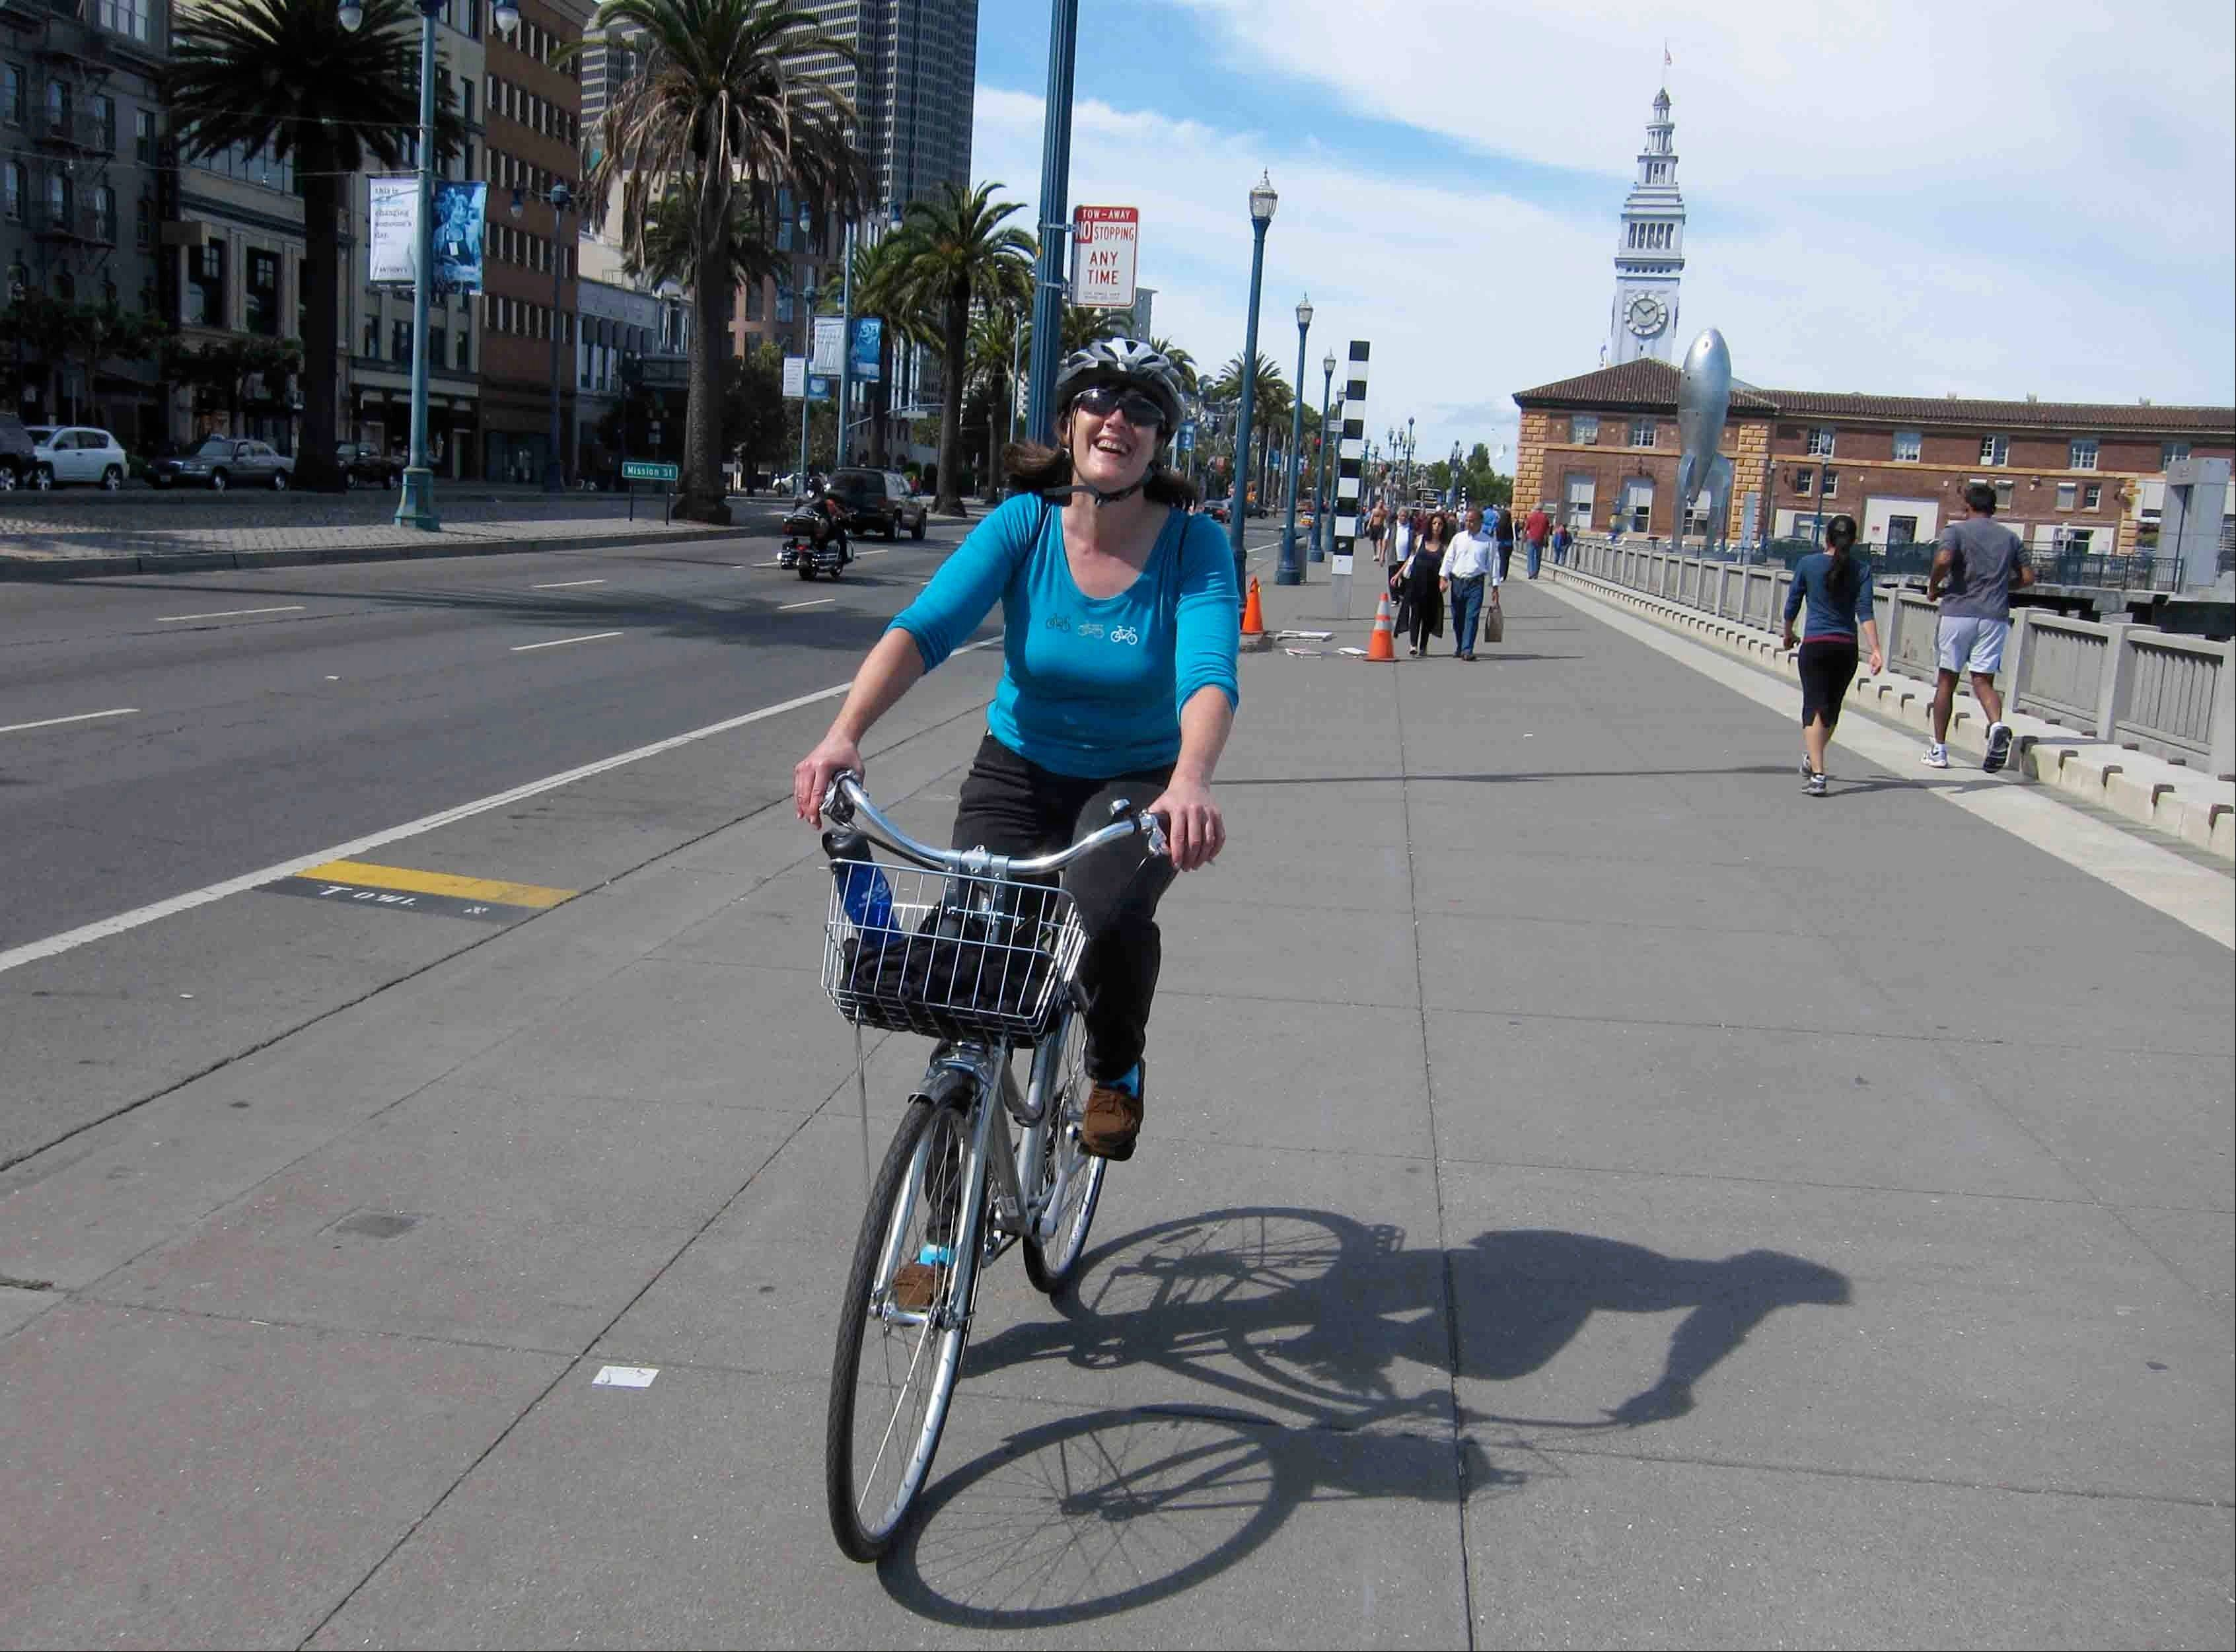 Paula Froke, of New York, rides along the Embarcadero in San Francisco during a Streets of San Francisco bike tour.